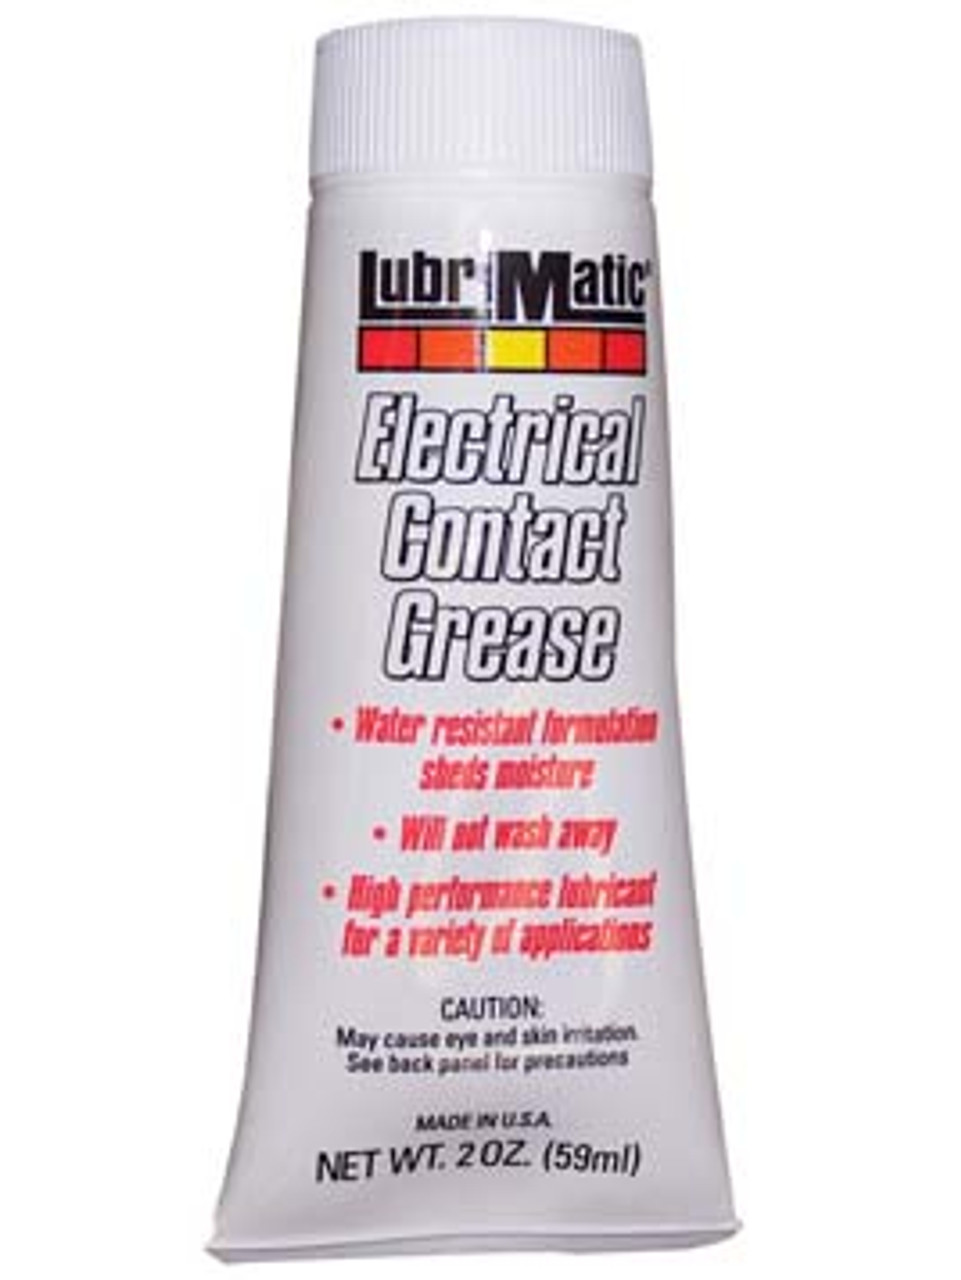 EGREASE --- Dielectric Grease